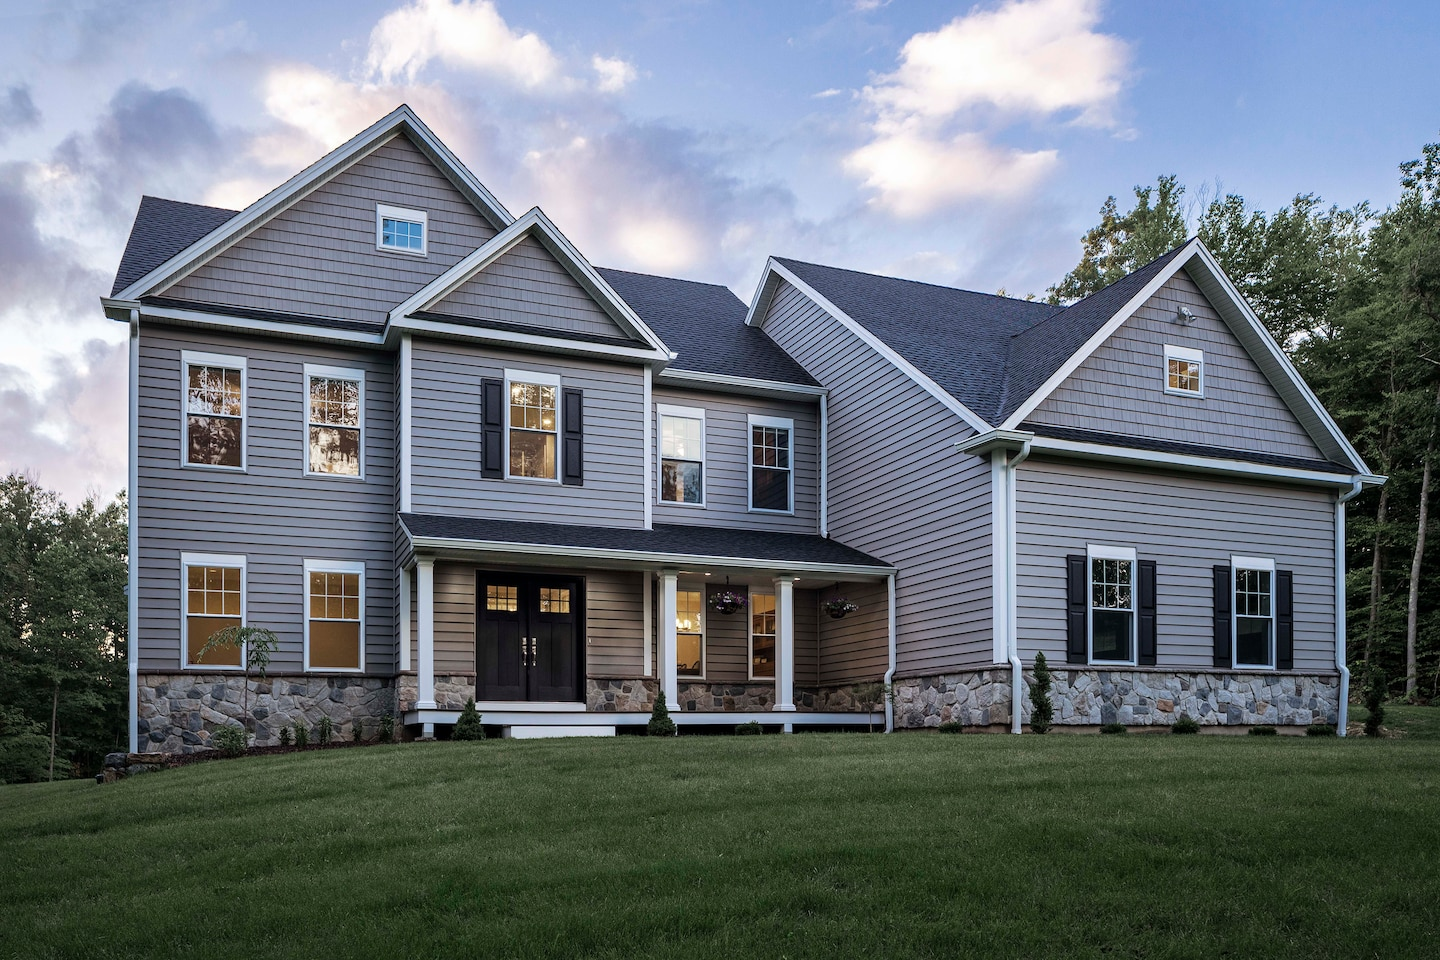 Full Home Remodel - Siding, Windows, and a Roofing system